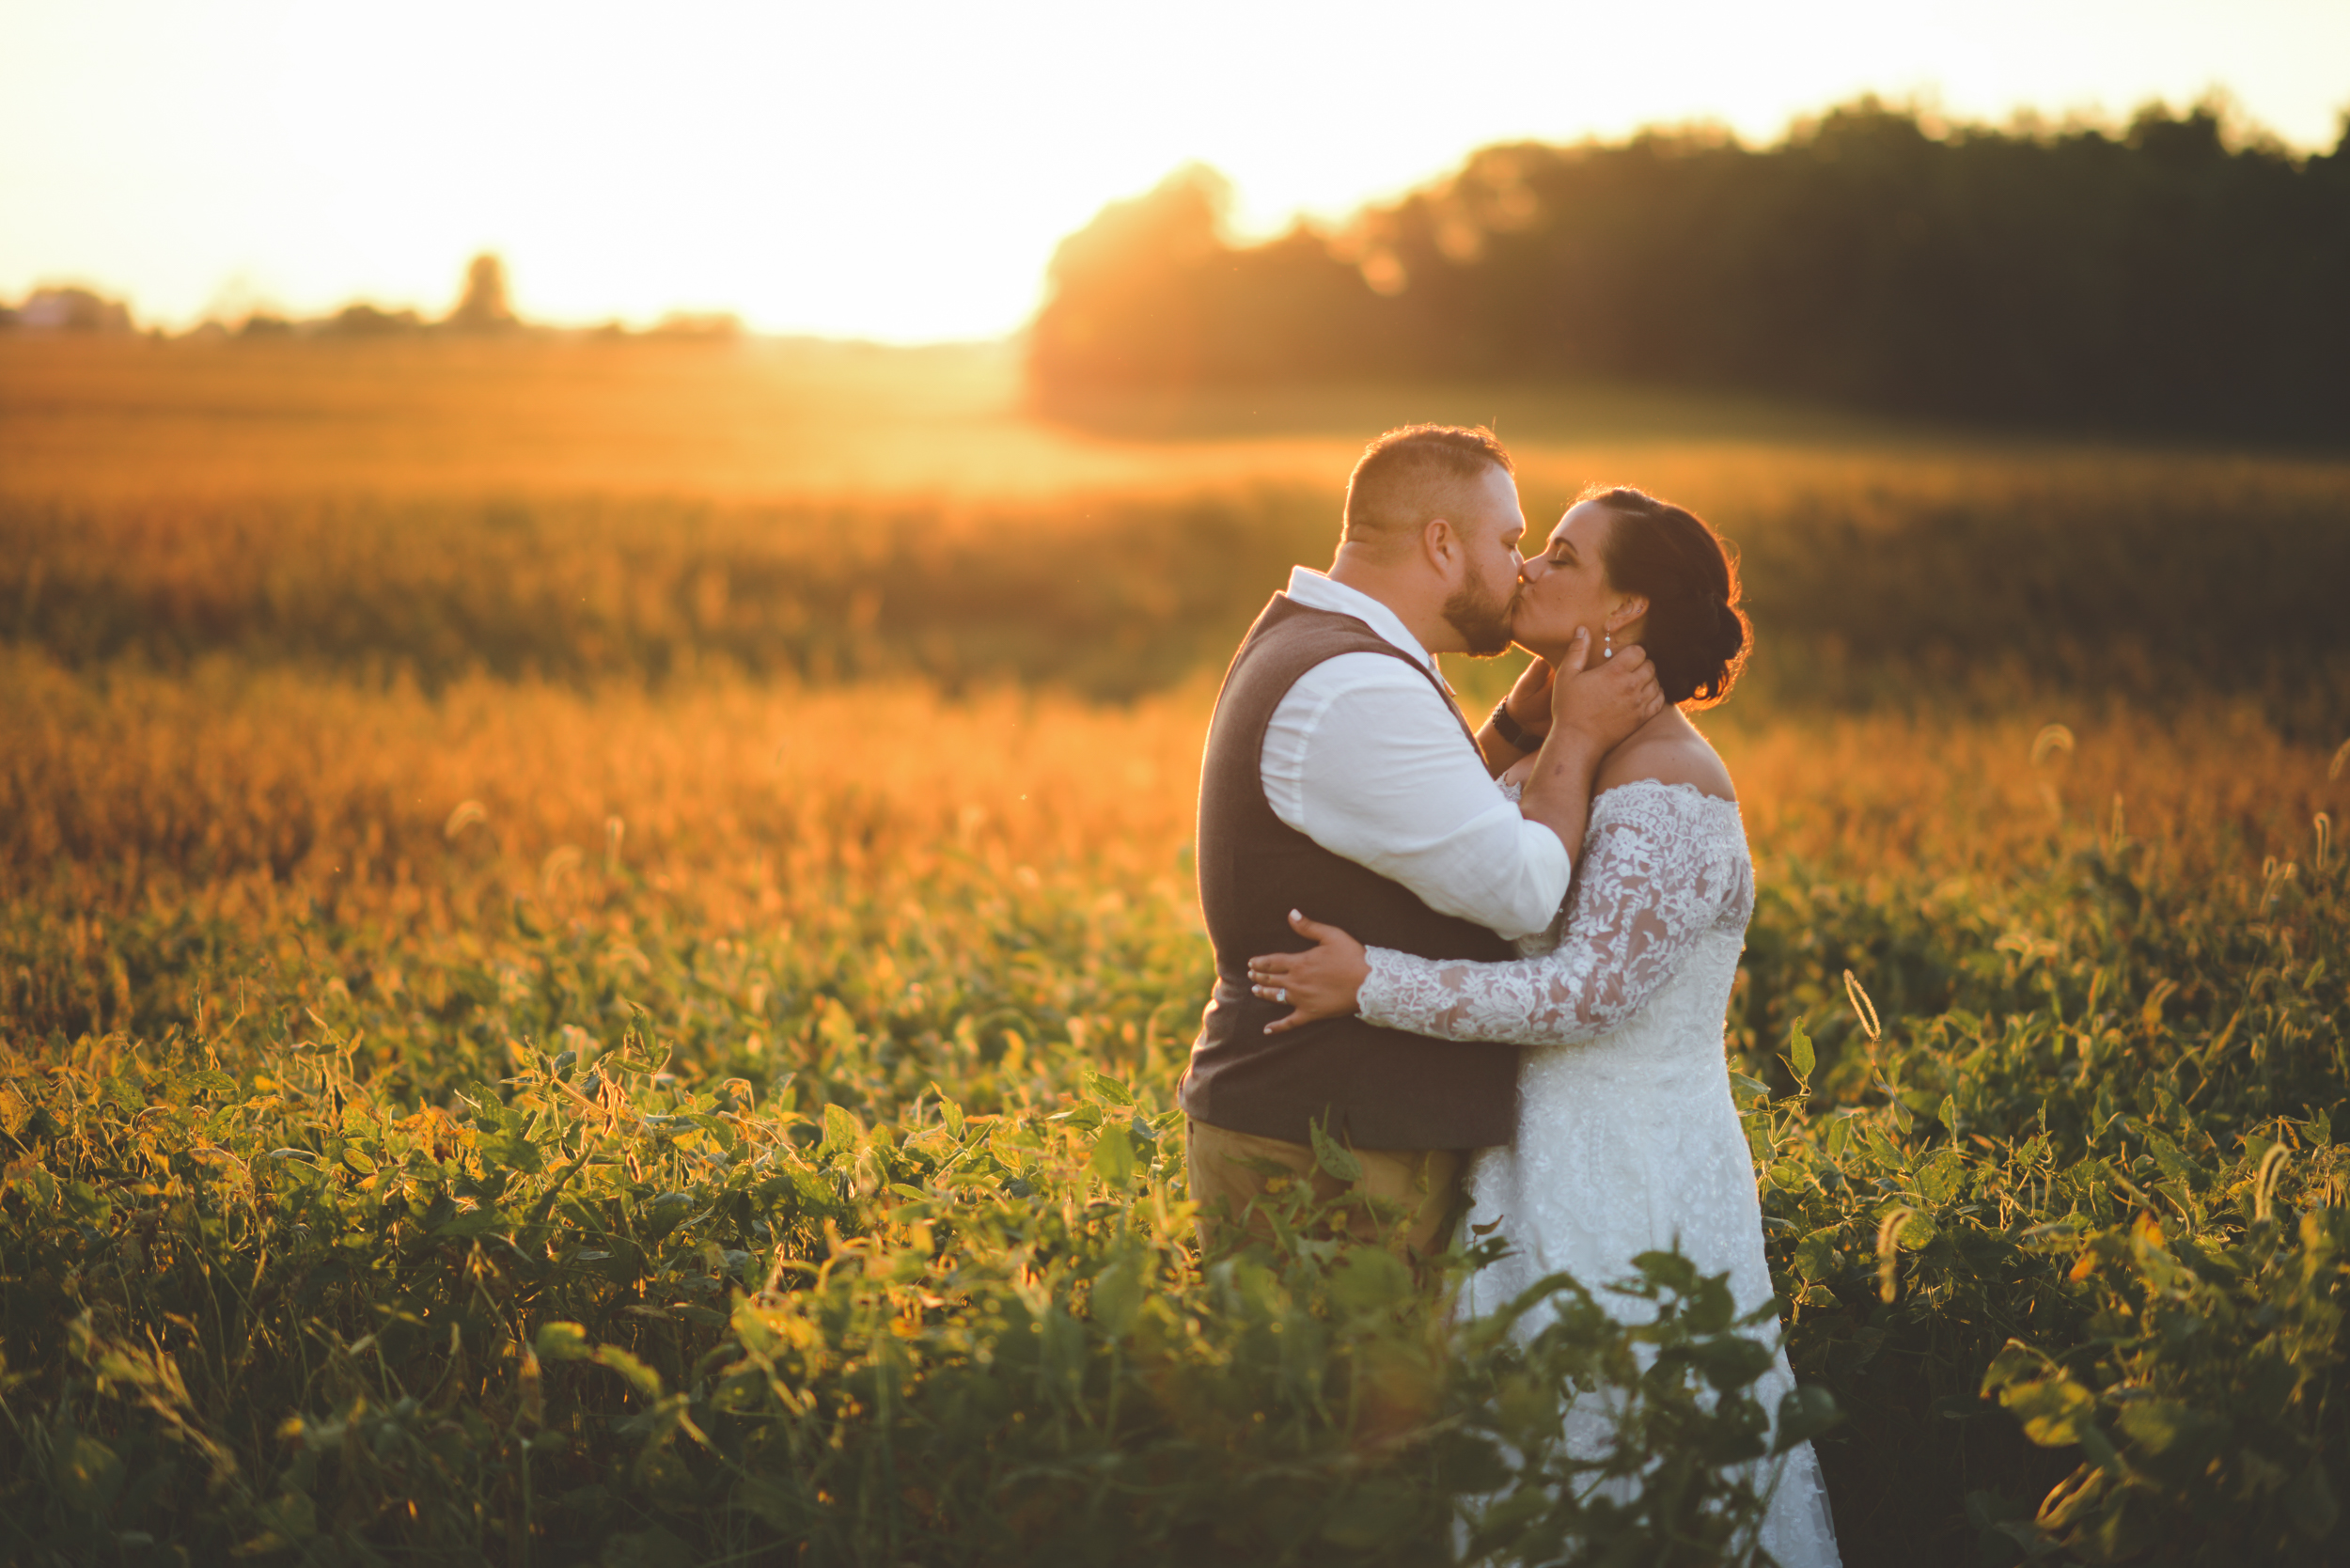 Indianapolis wedding photography - 2018 year end wedding favorites